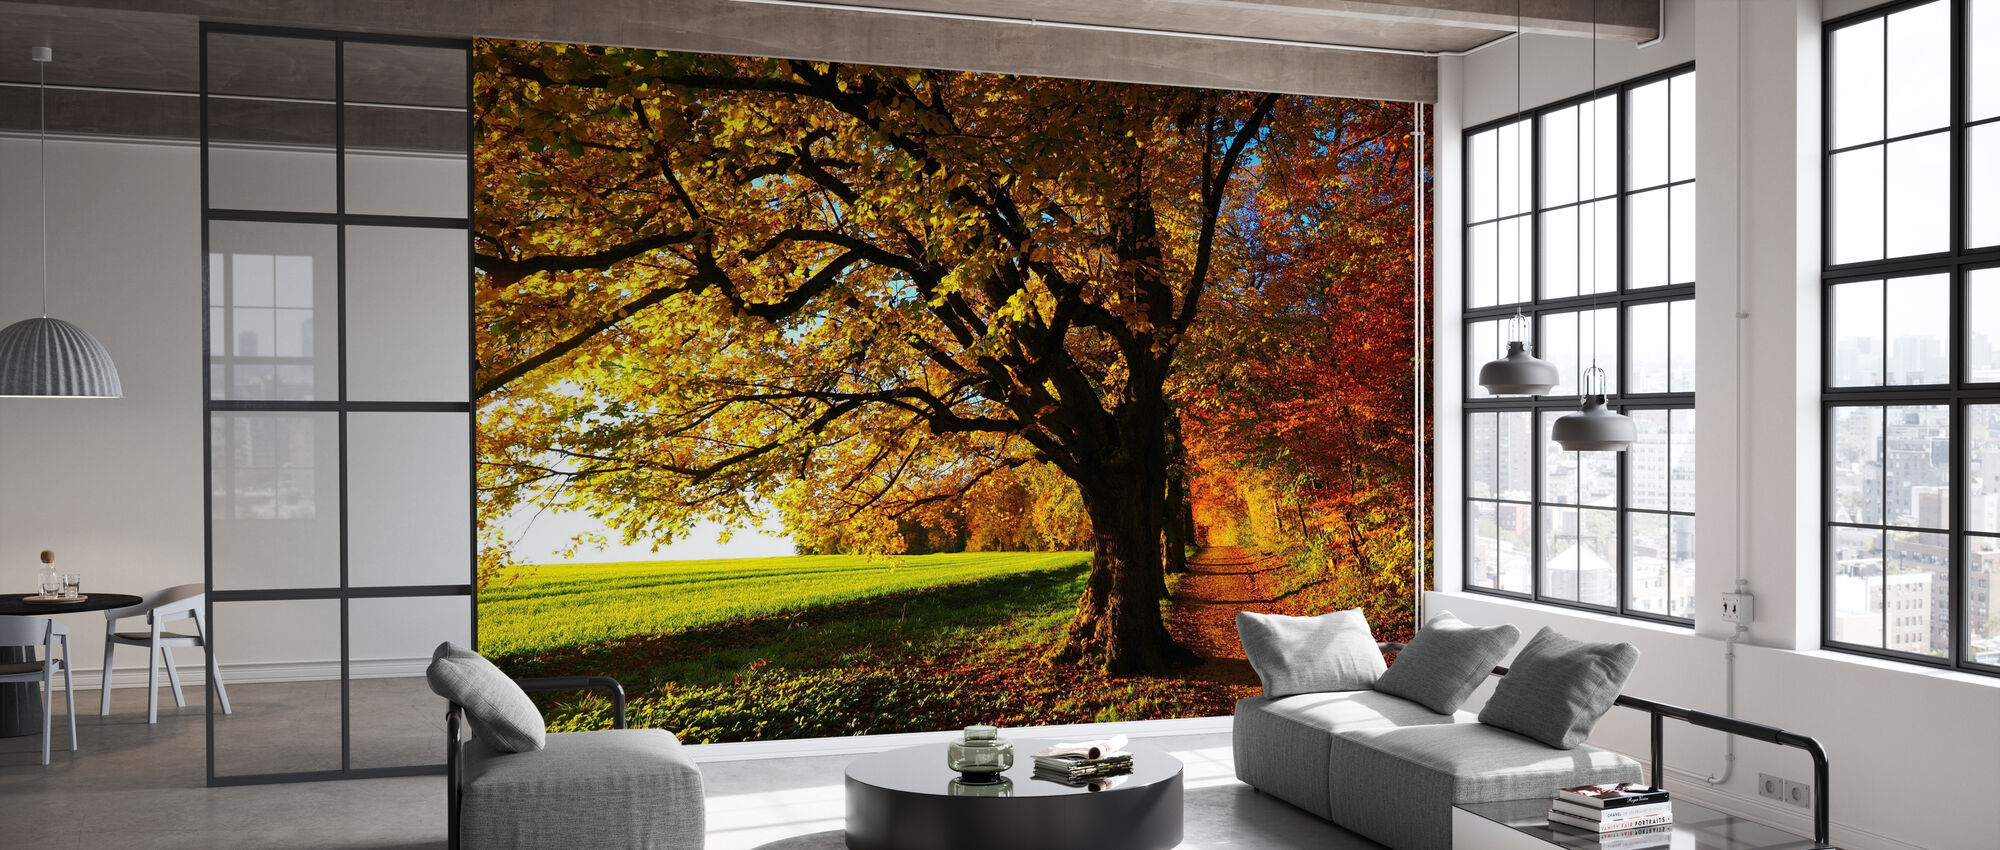 Forest Trail and Field - Wallpaper - Office